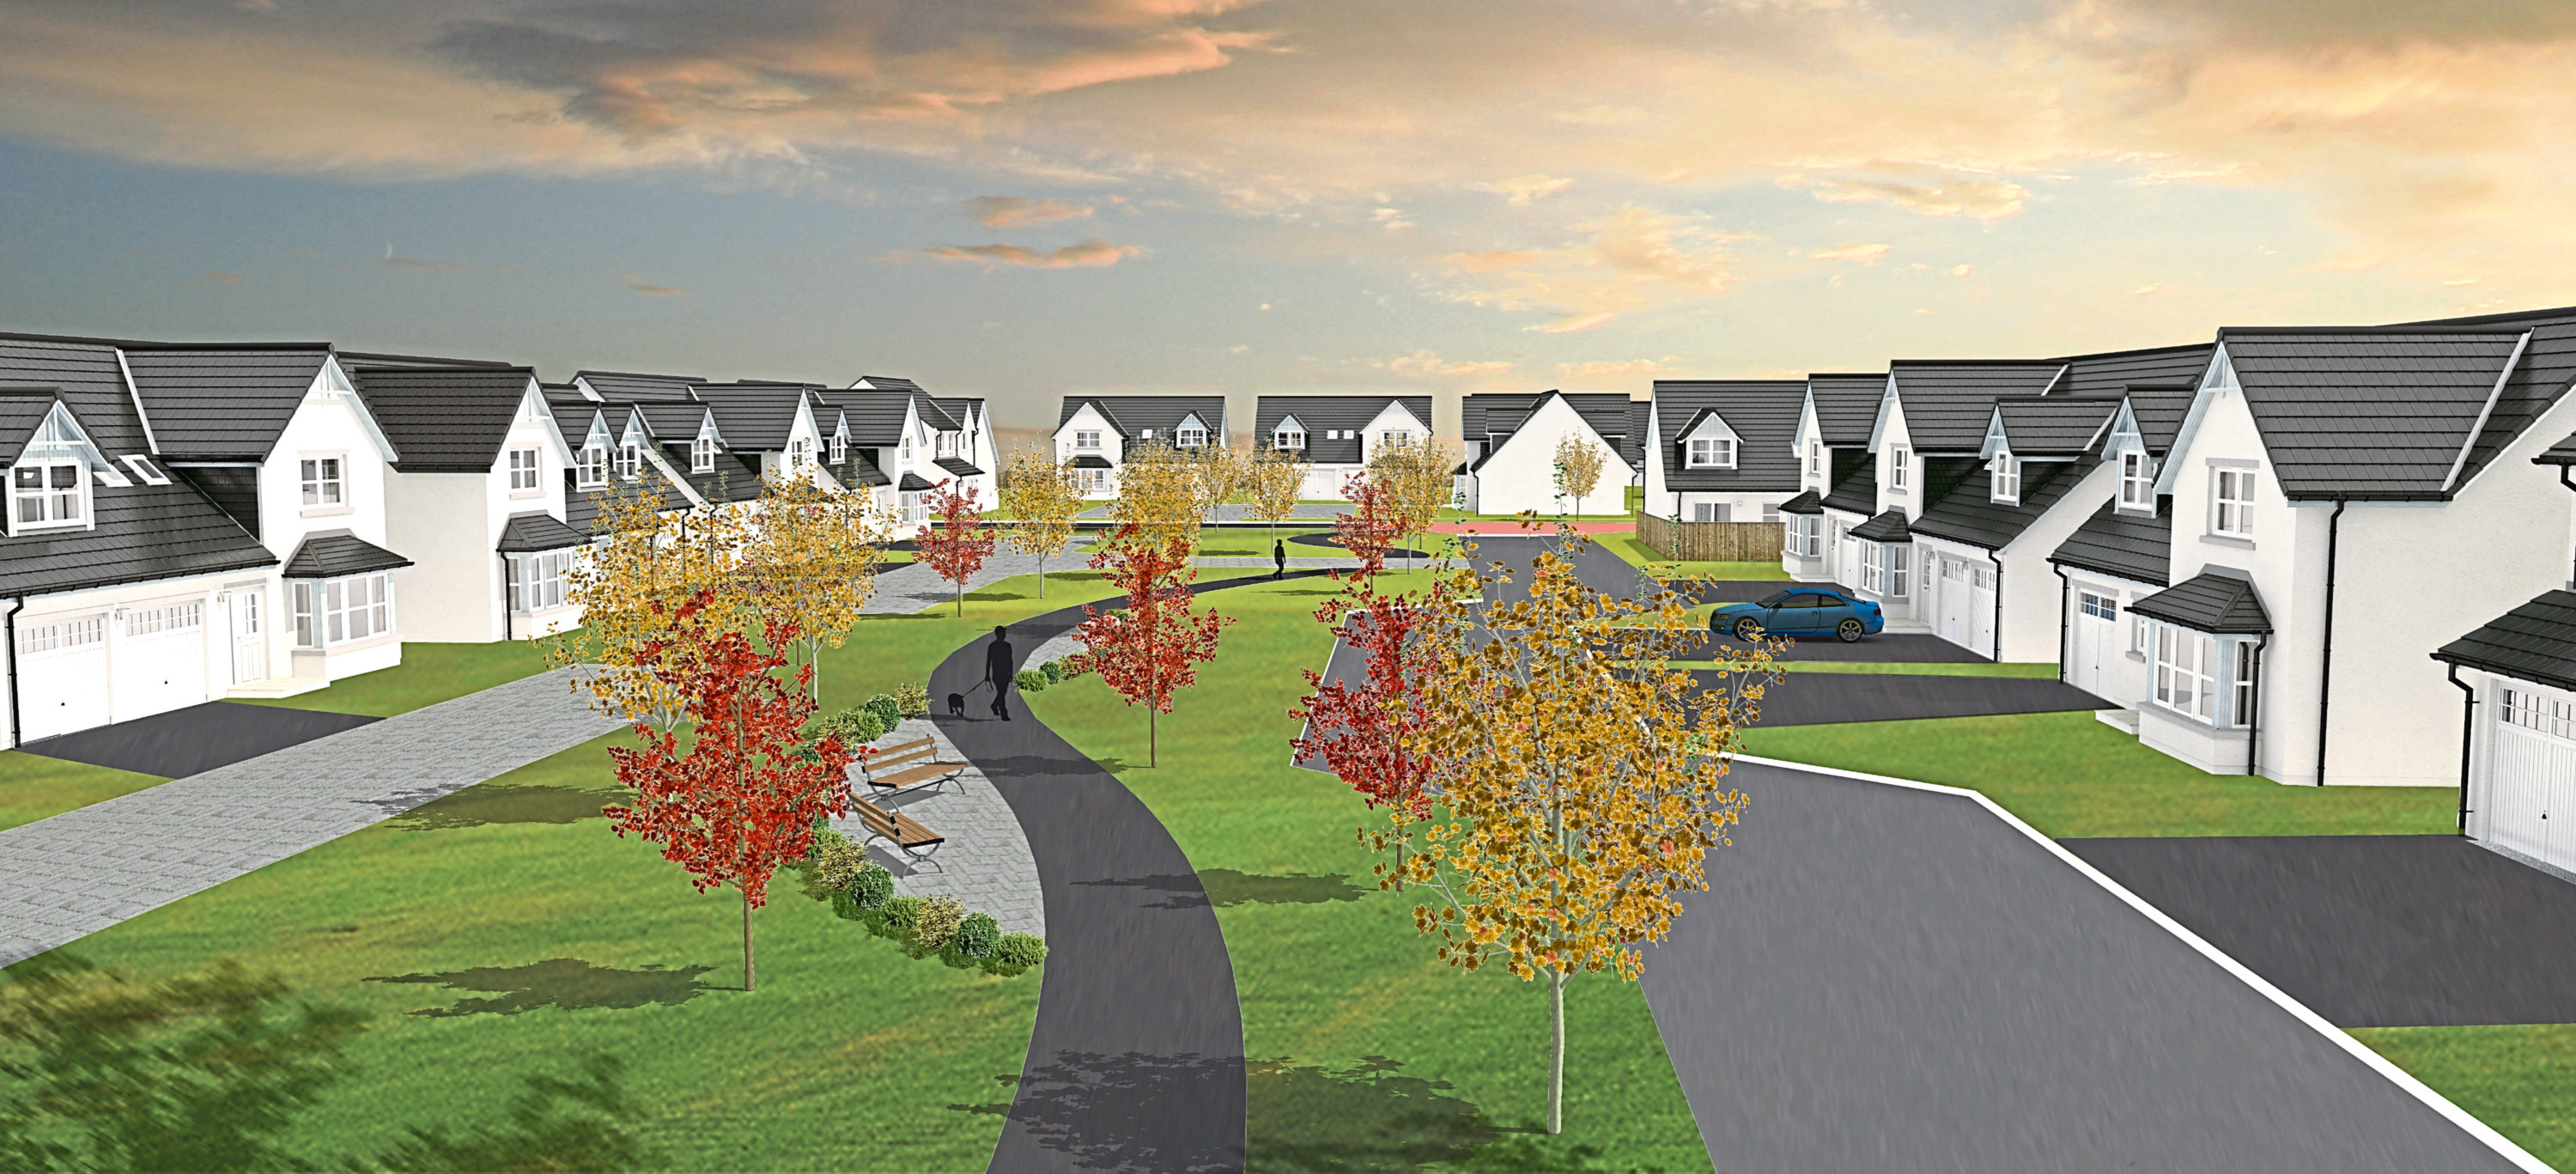 An artist's impression of Kirkwood Homes' plans for 150 new homes in Linlathen